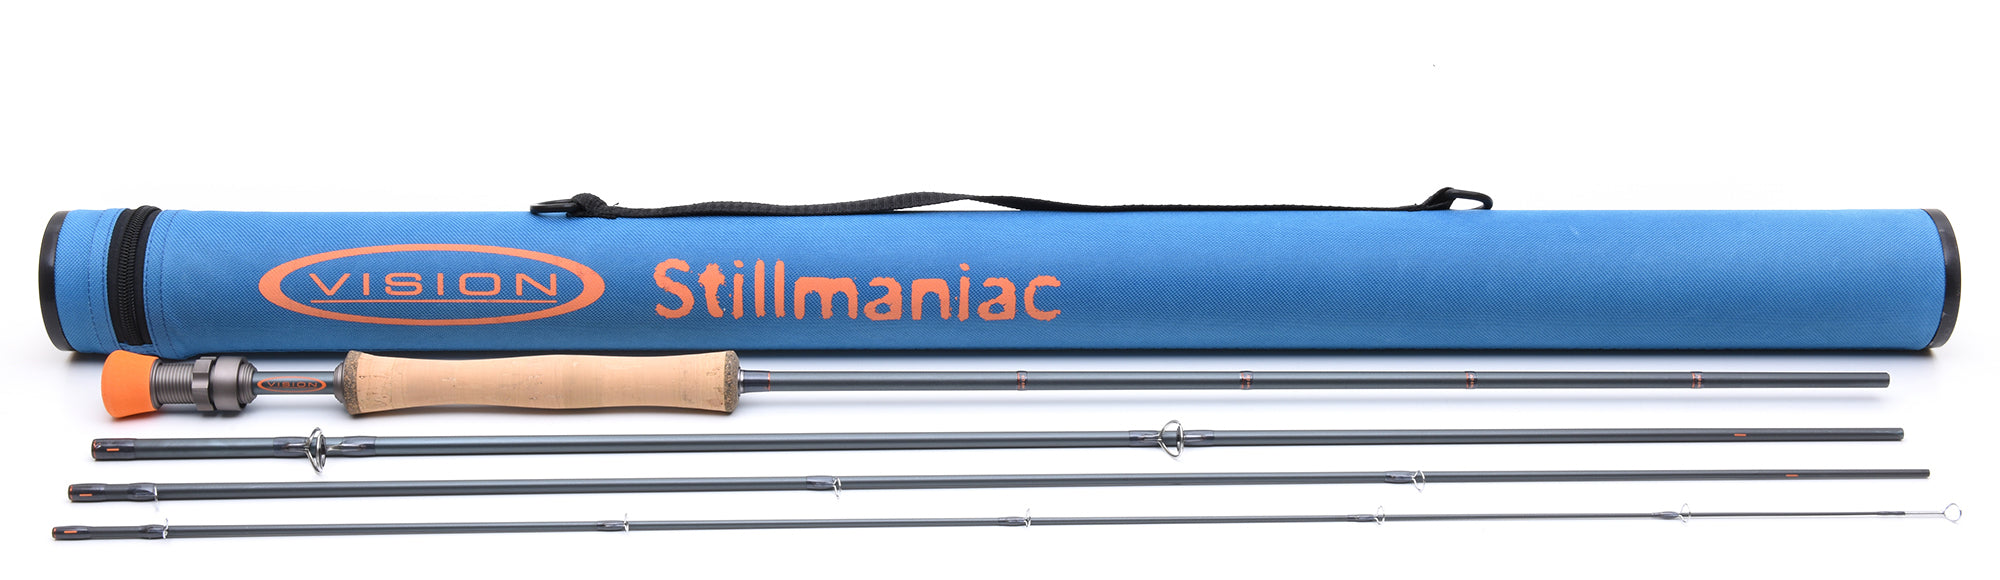 Vision Stillmaniac Rod 4pc - NEW